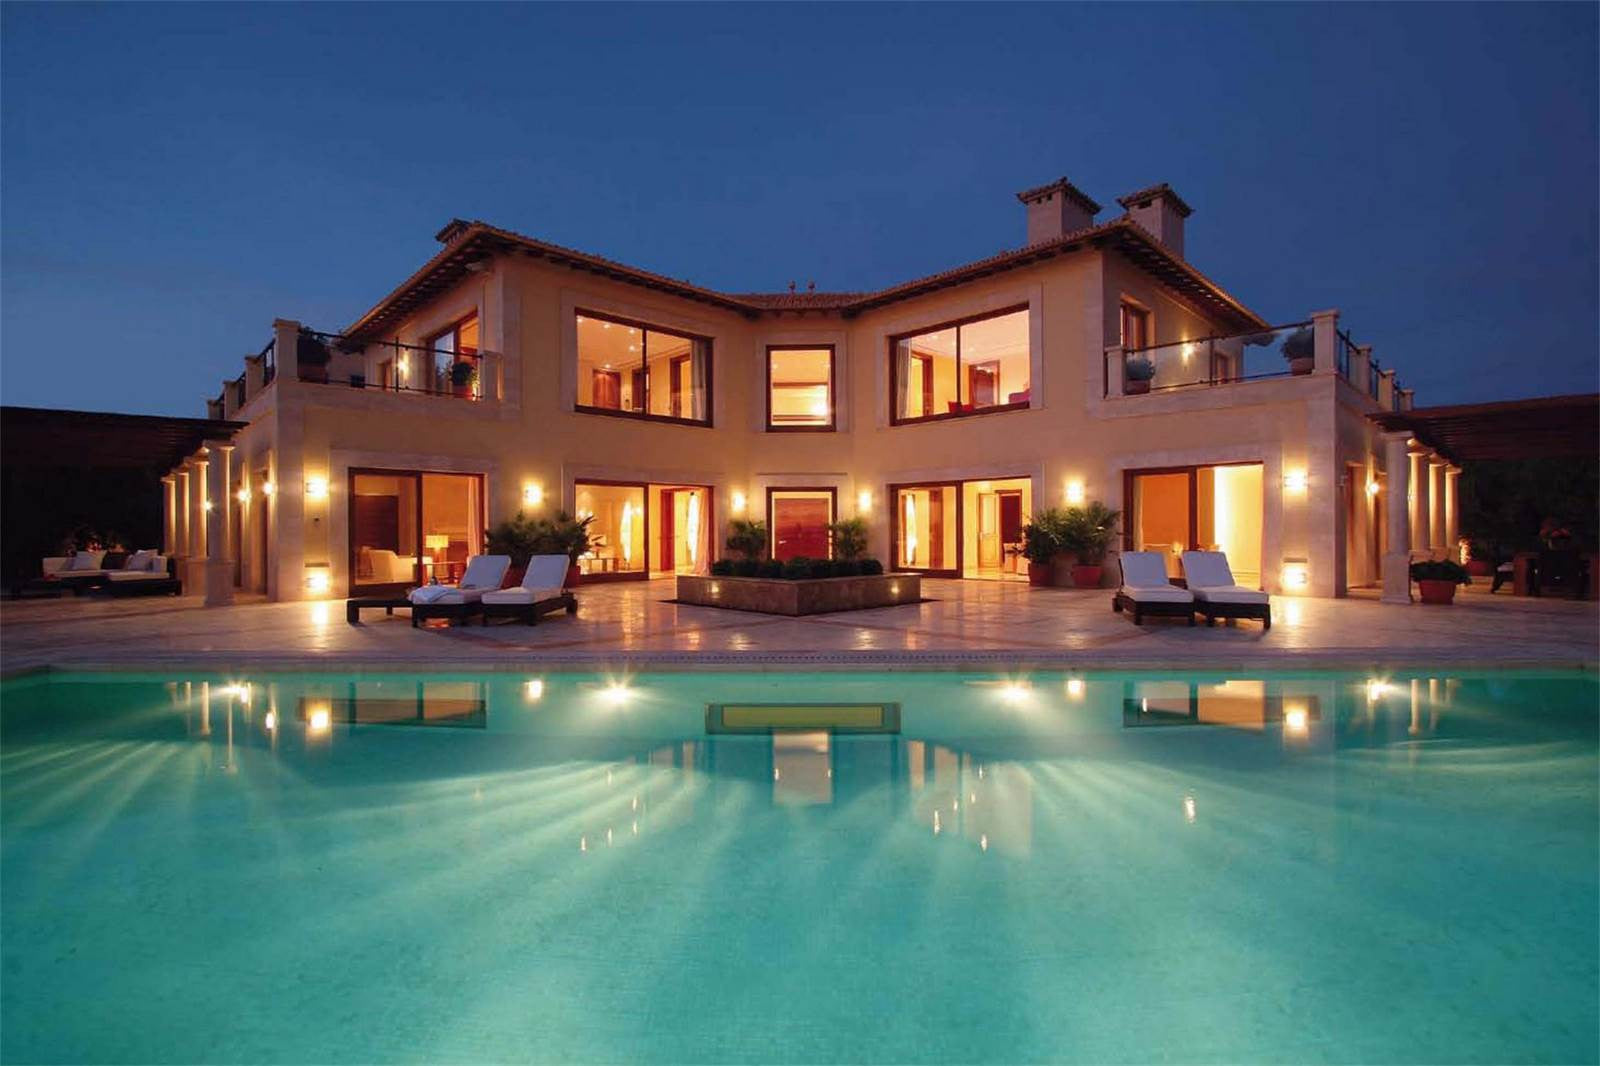 LUXURY SEA VIEW VILLA PORT ANDRATX, MALLORCA SPAIN